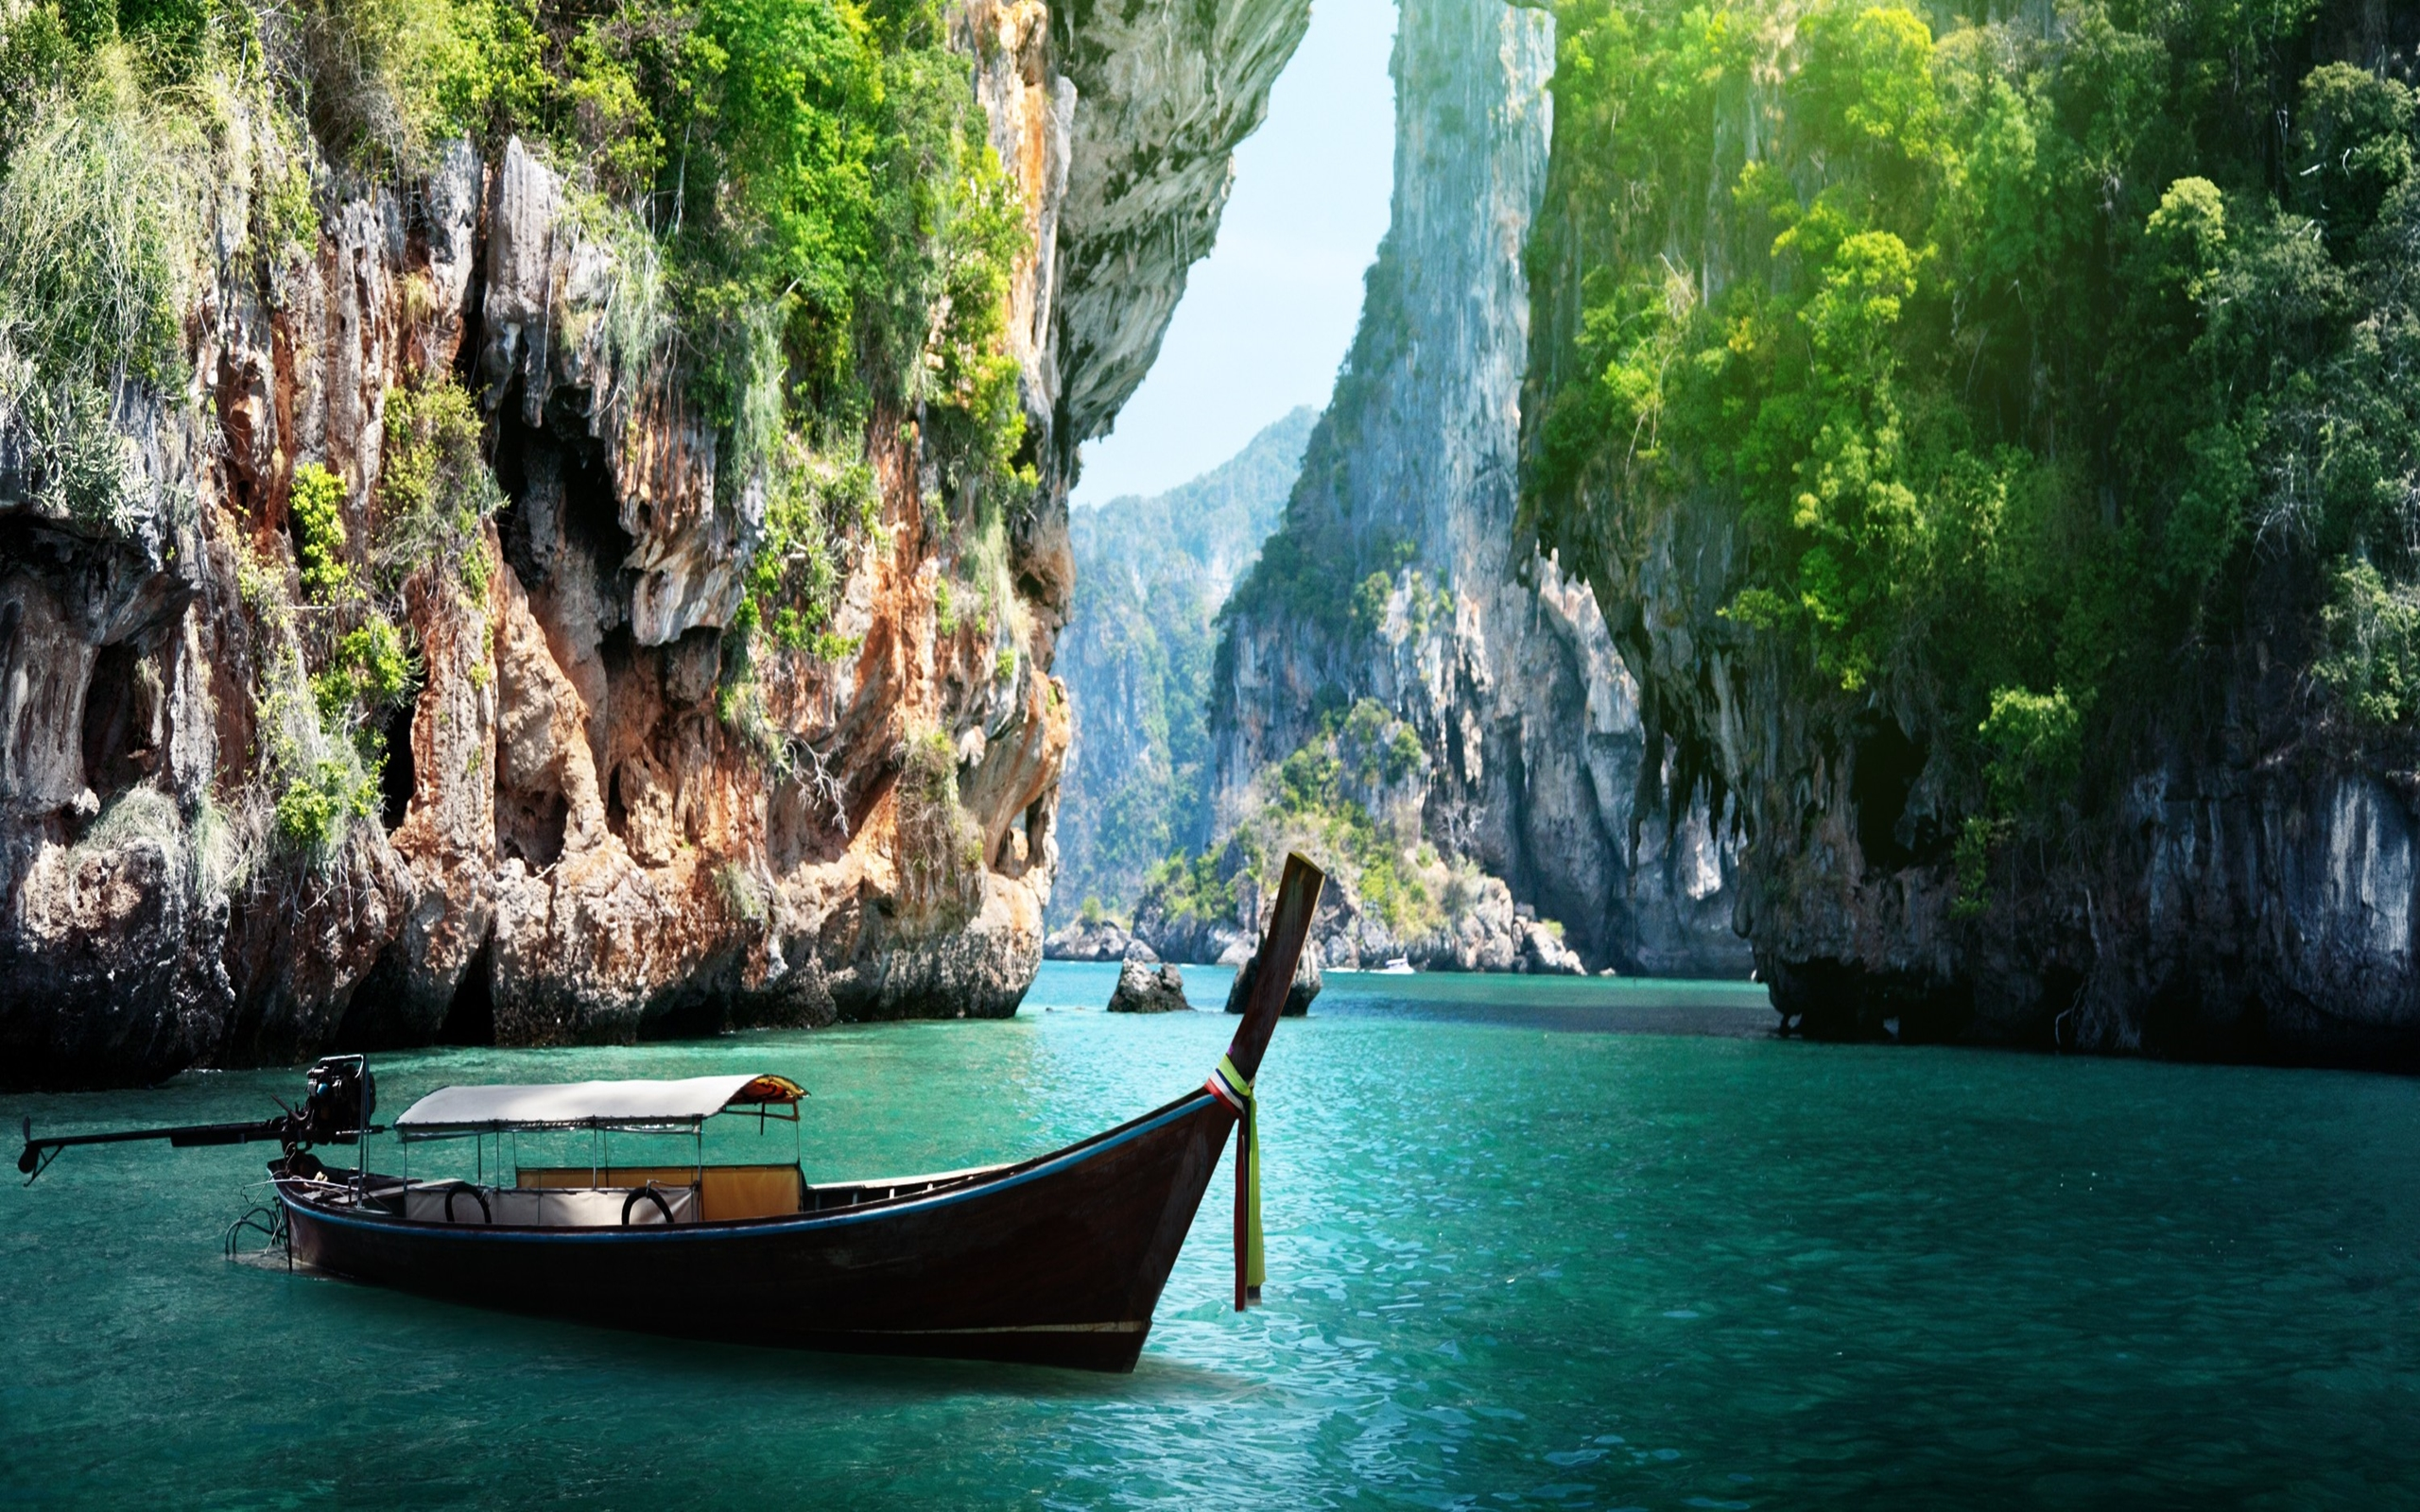 Wipeout Hd Wallpaper Long Boat And Rocks On Railay Beach In Krabi Thailand